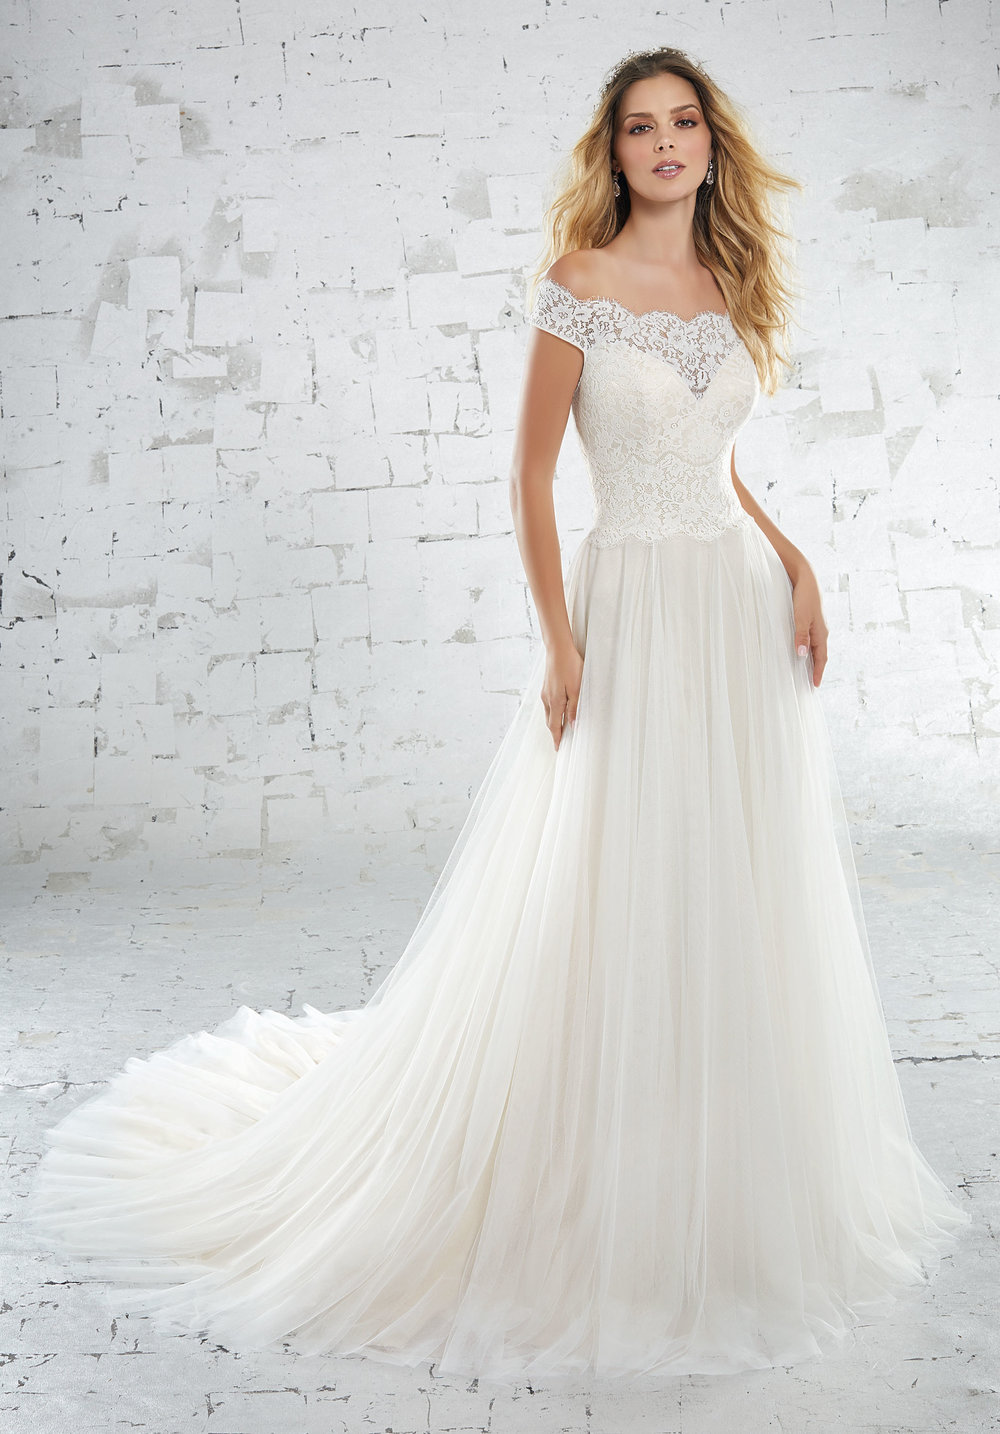 Mori Lee 6881 Ivory // Retail Price $999 | Our Price $699